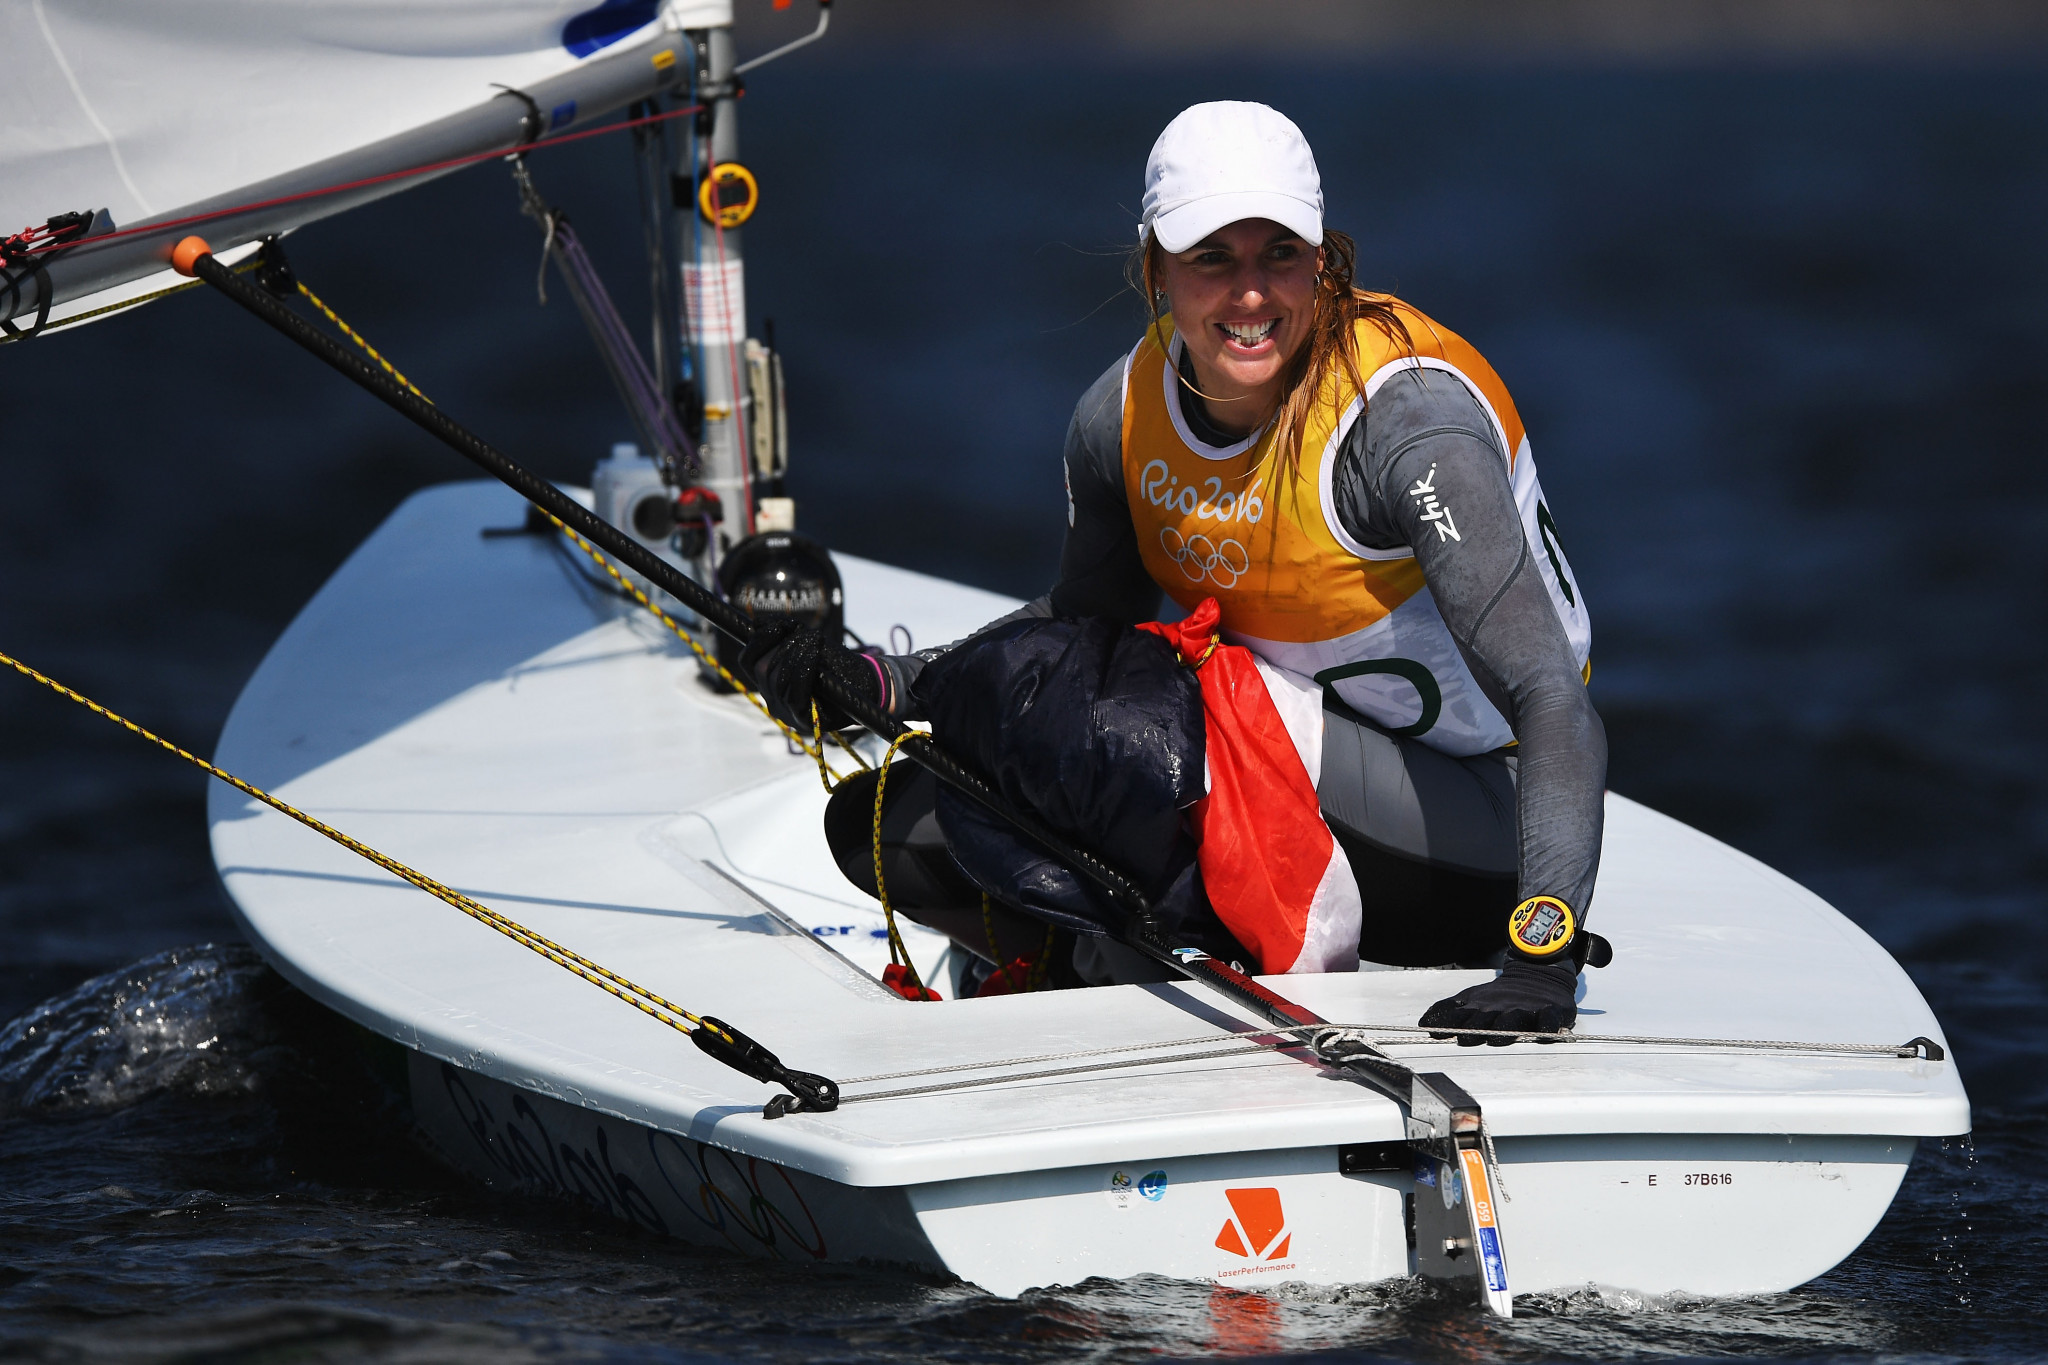 Bouwmeester opens up big lead at Laser Radial Women's World Championship